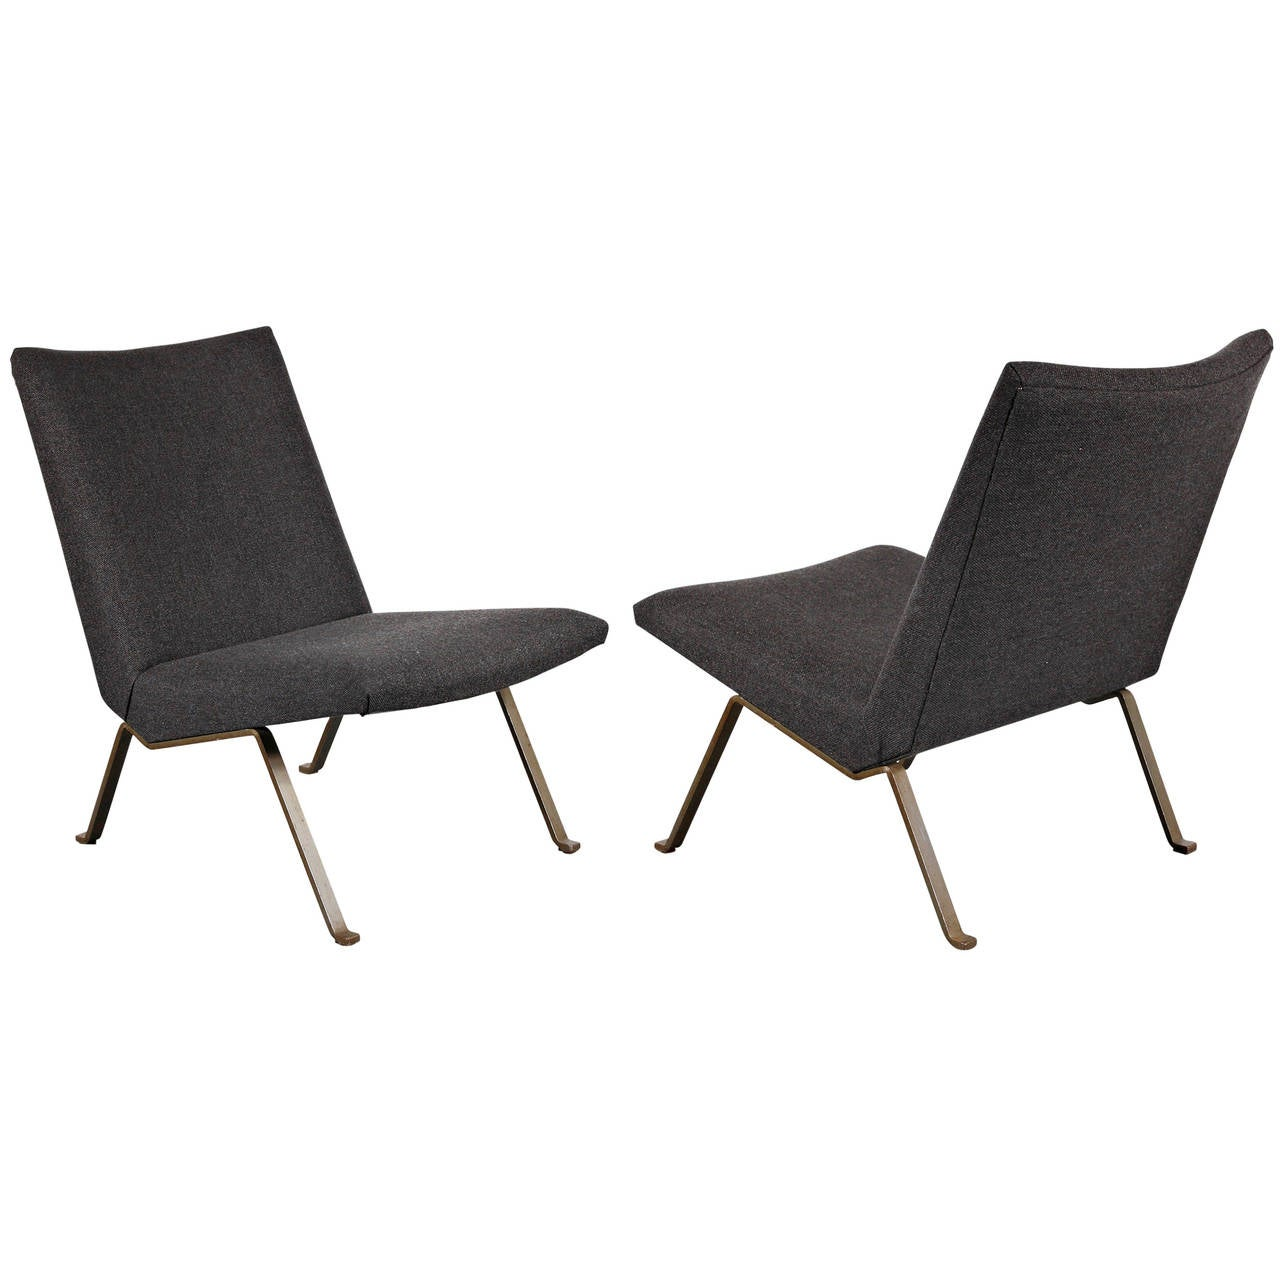 Barcelona Chairs For Sale Barcelona Chair Original Materials Of Barcelona Chair Replica